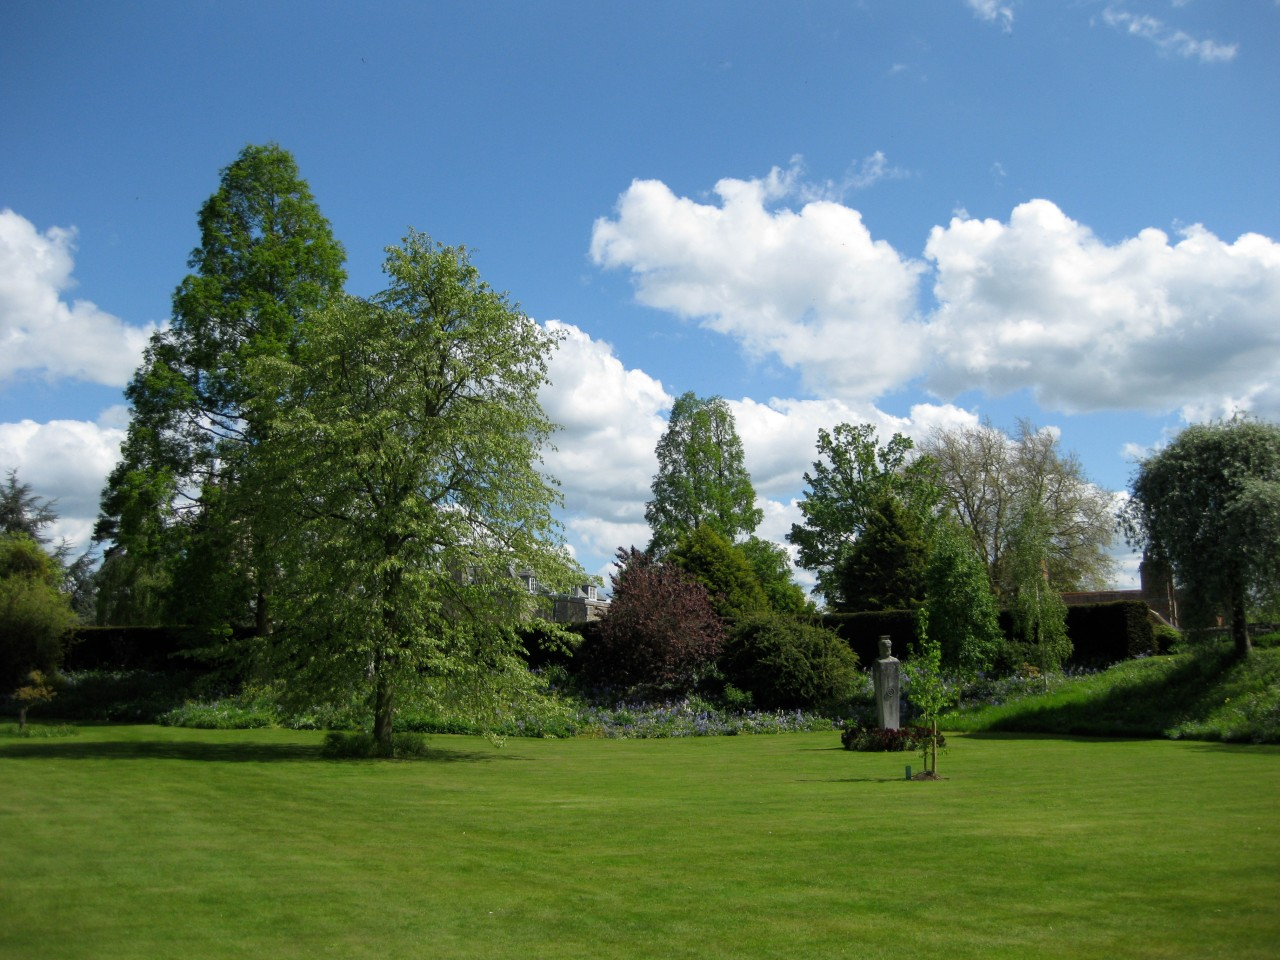 Our theatre: looking towards the Herm in Merton Fellows' Gardens